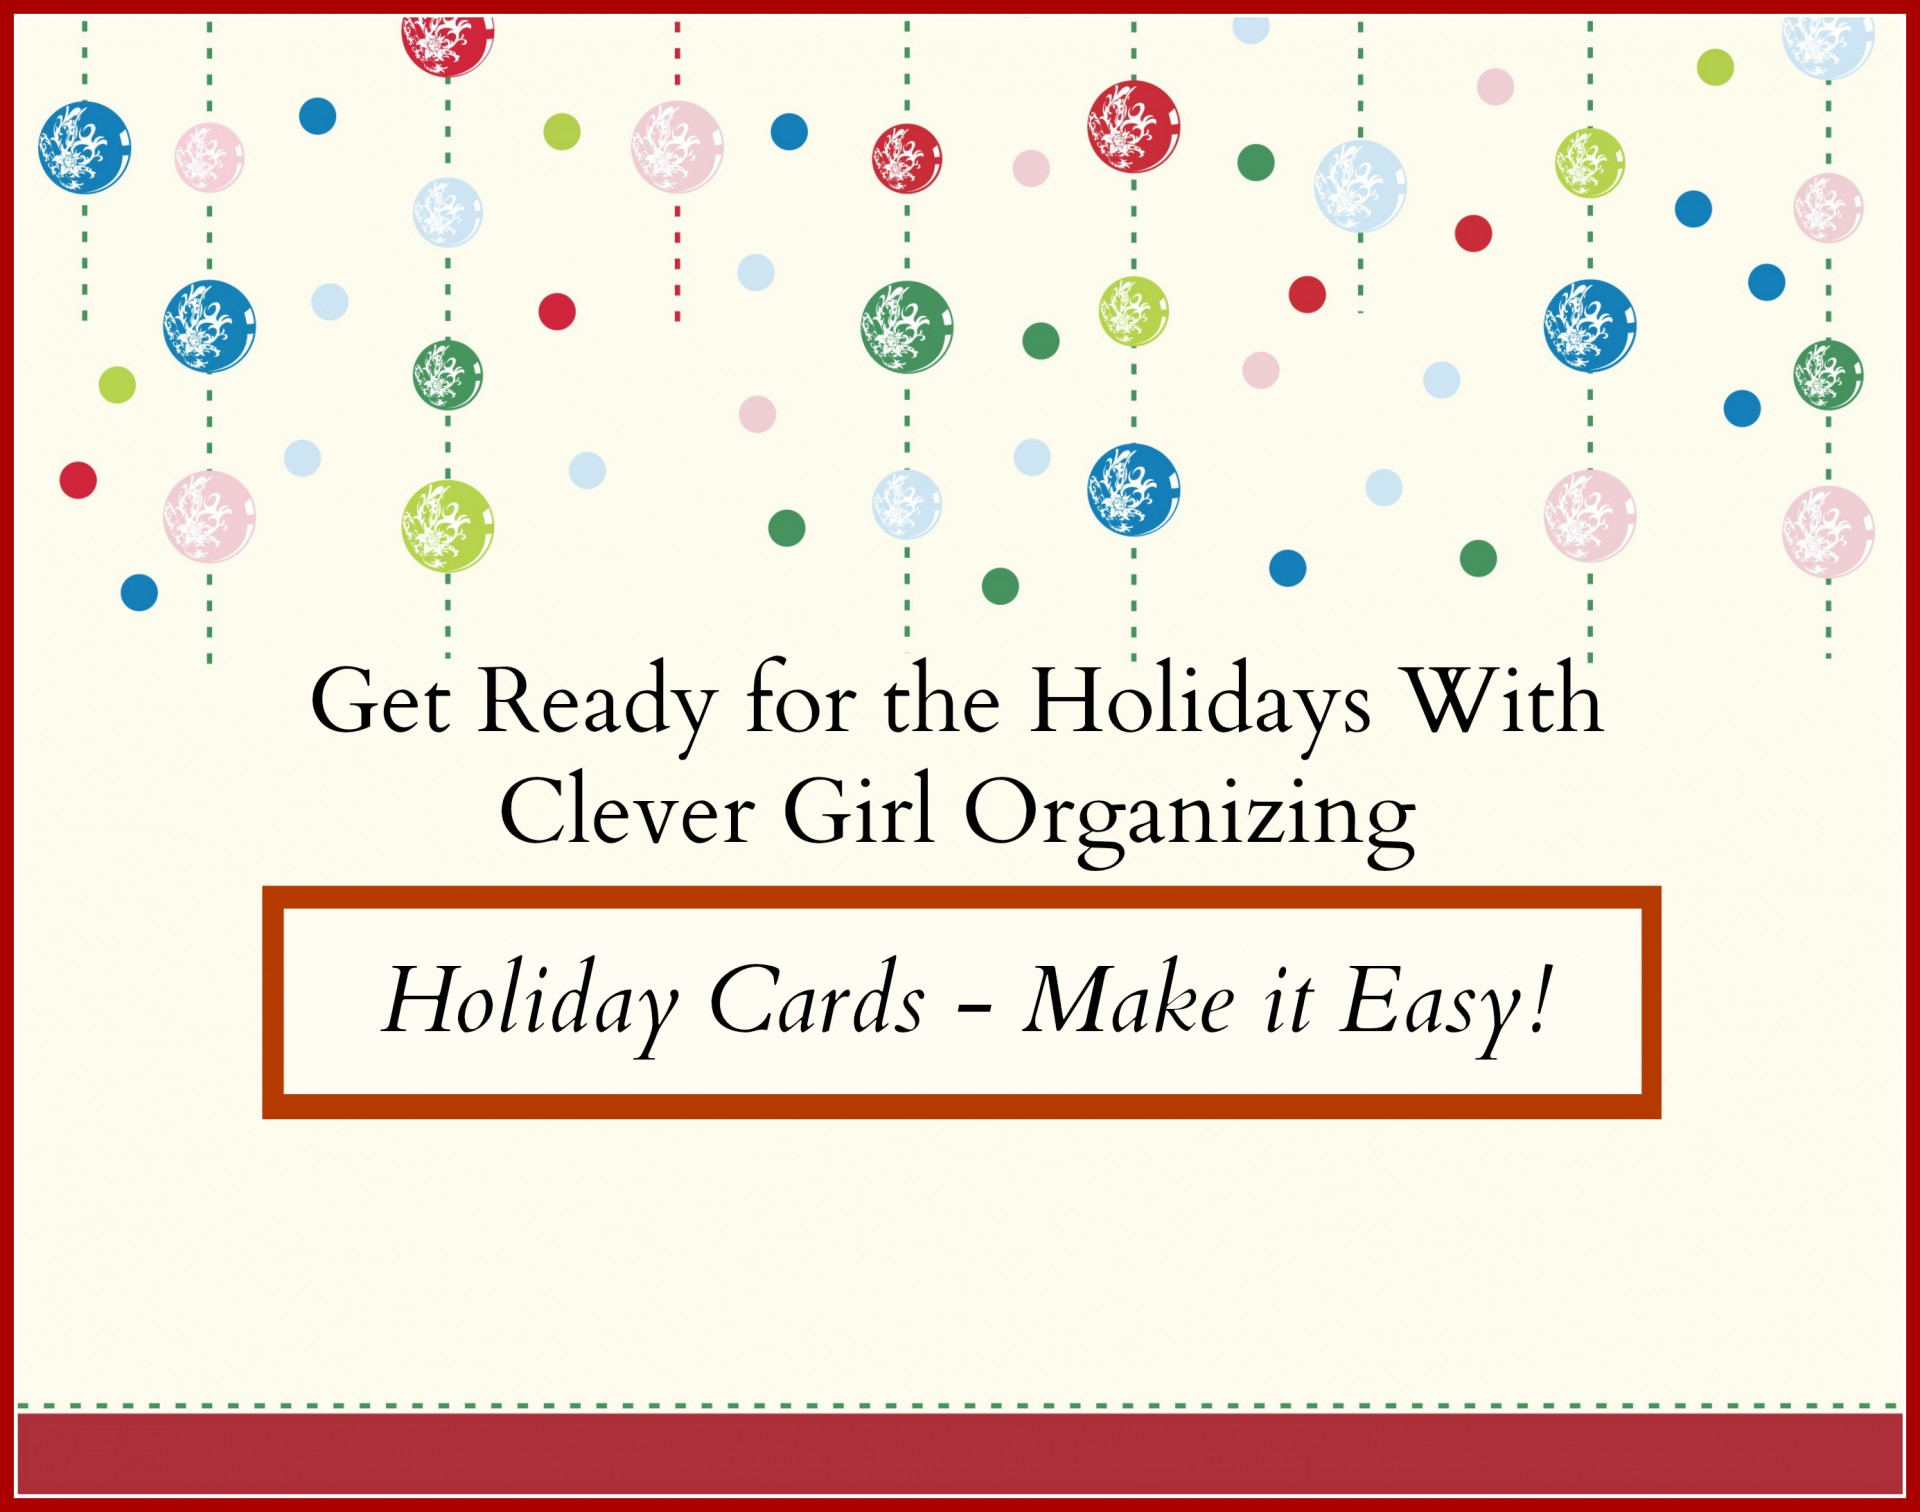 holiday cards make it easy